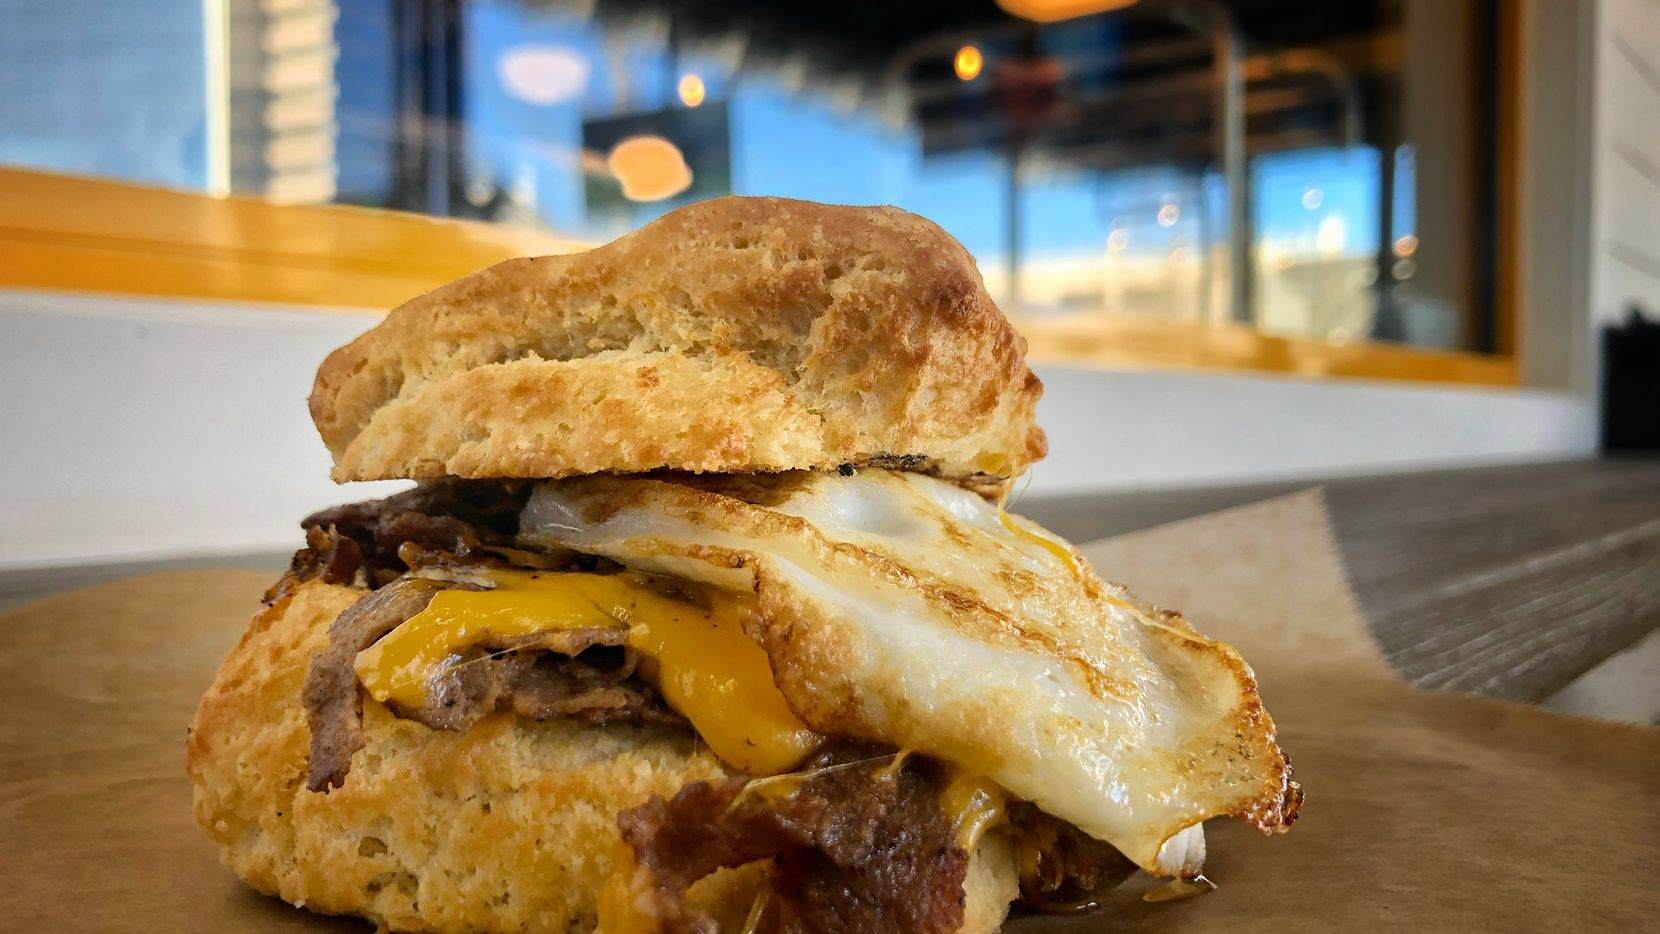 The Biscuit Bar serves a Steak & Egg biscuit, made with sliced ribeye, an egg over easy and melted cheddar cheese.